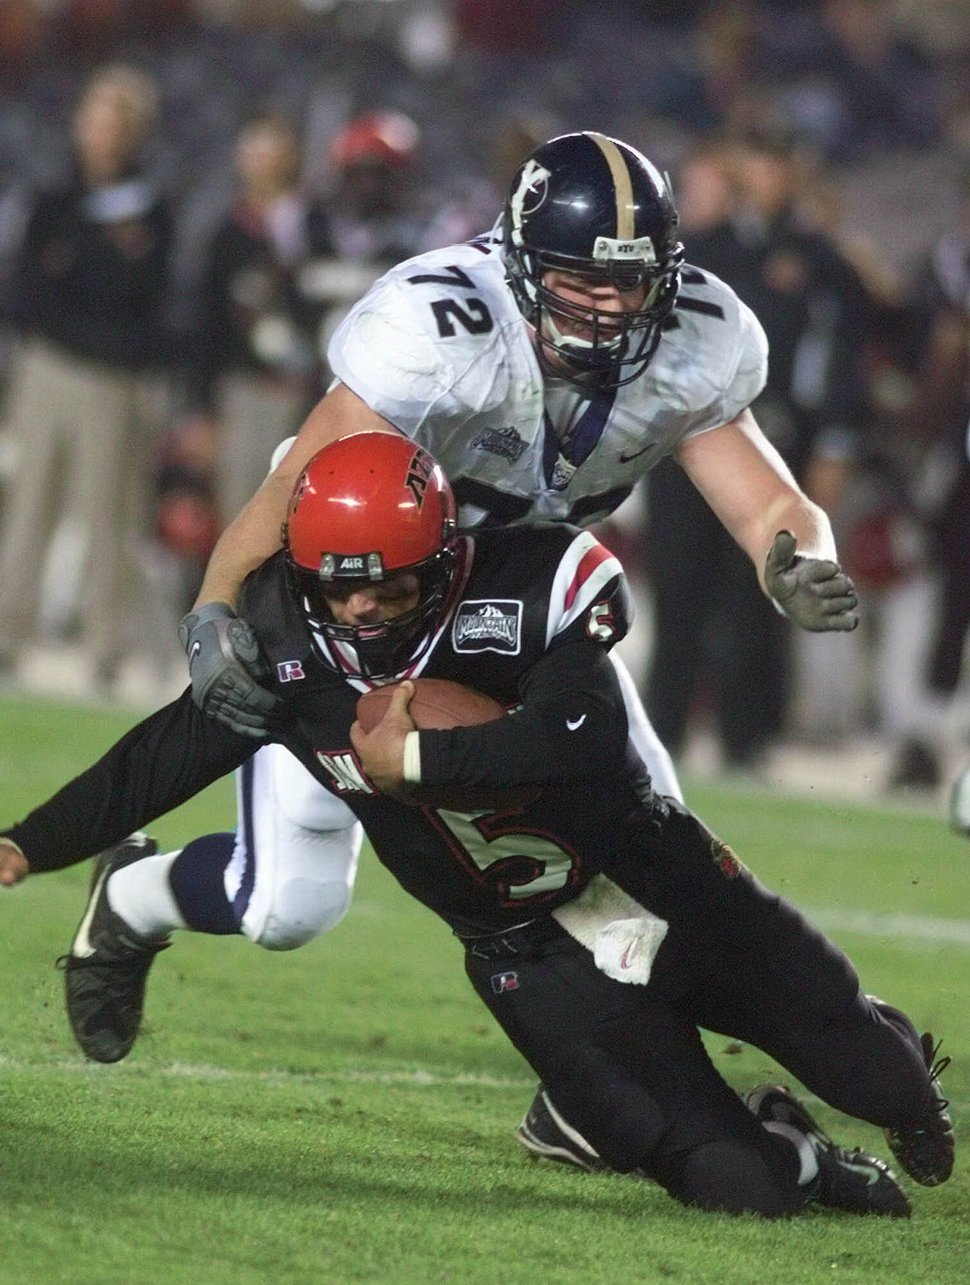 (Lenny Ignelzi | AP file photo) San Diego State quarterback Jack Hawley is buried by BYU's Hans Olsens for a four-yard loss during the second quarter of their game Saturday, Nov. 6, 1999 in San Diego.